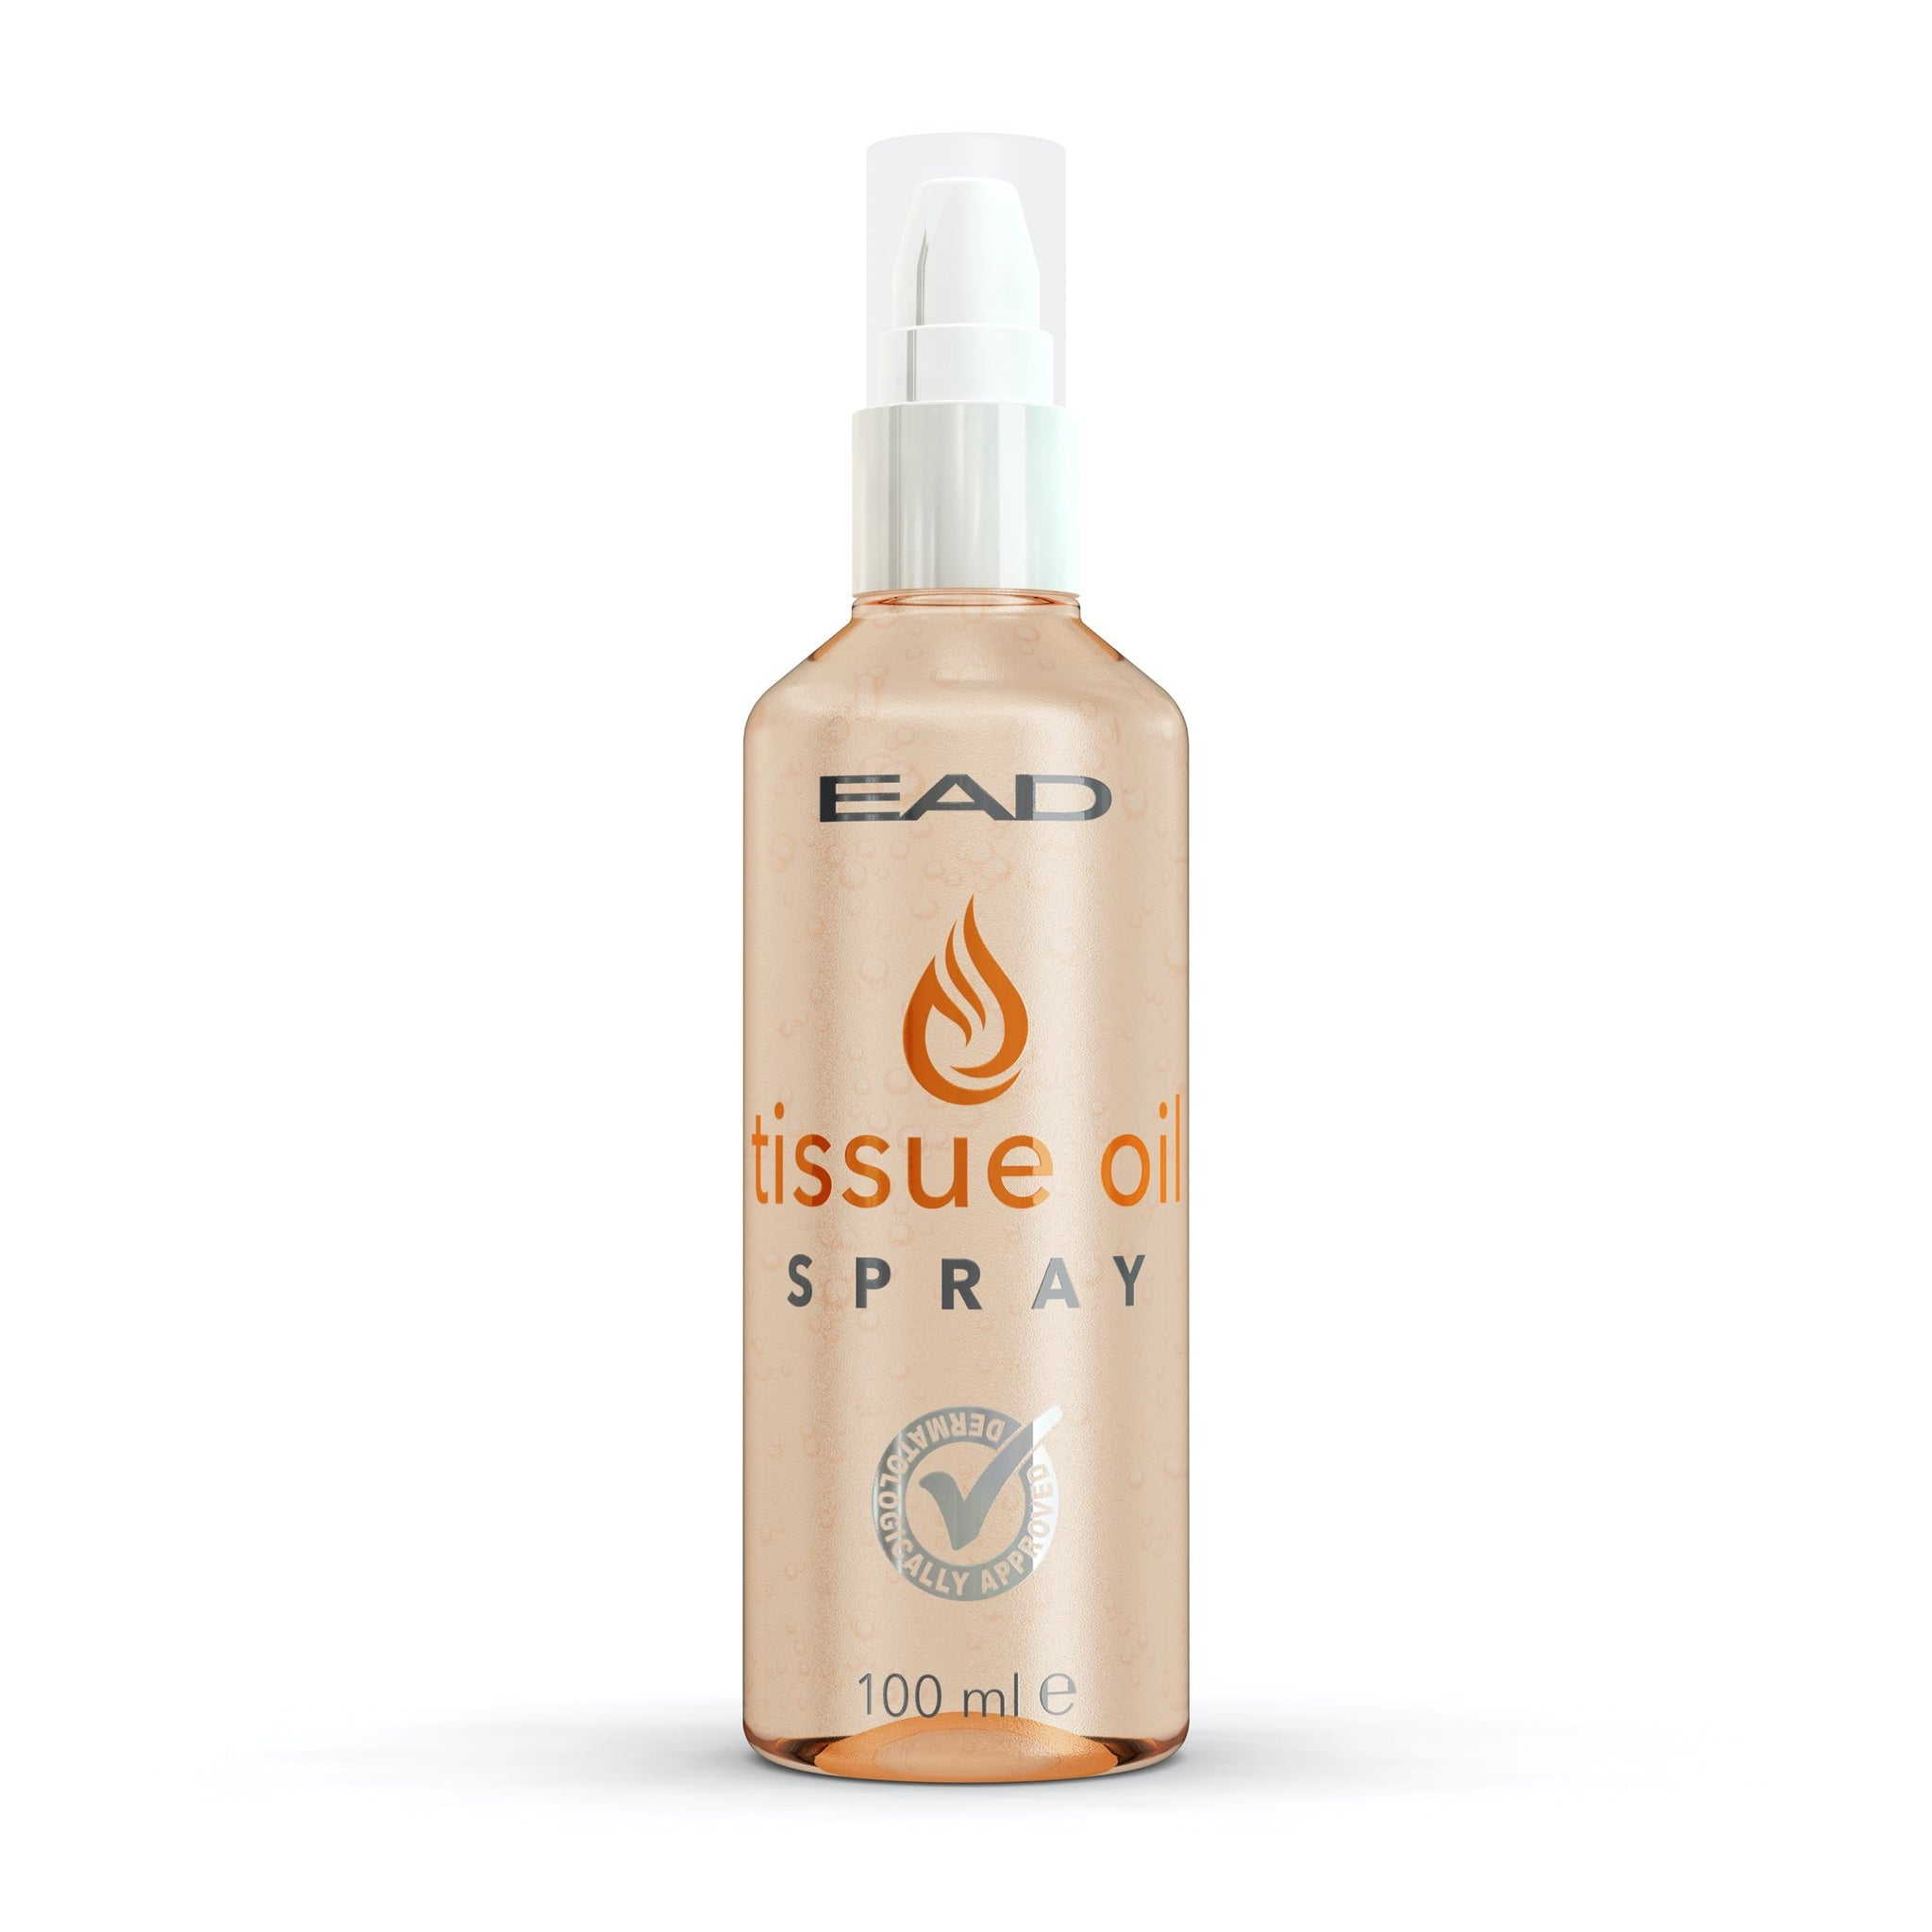 EAD TISSUE OIL SPRAY 100ML - 100 ml